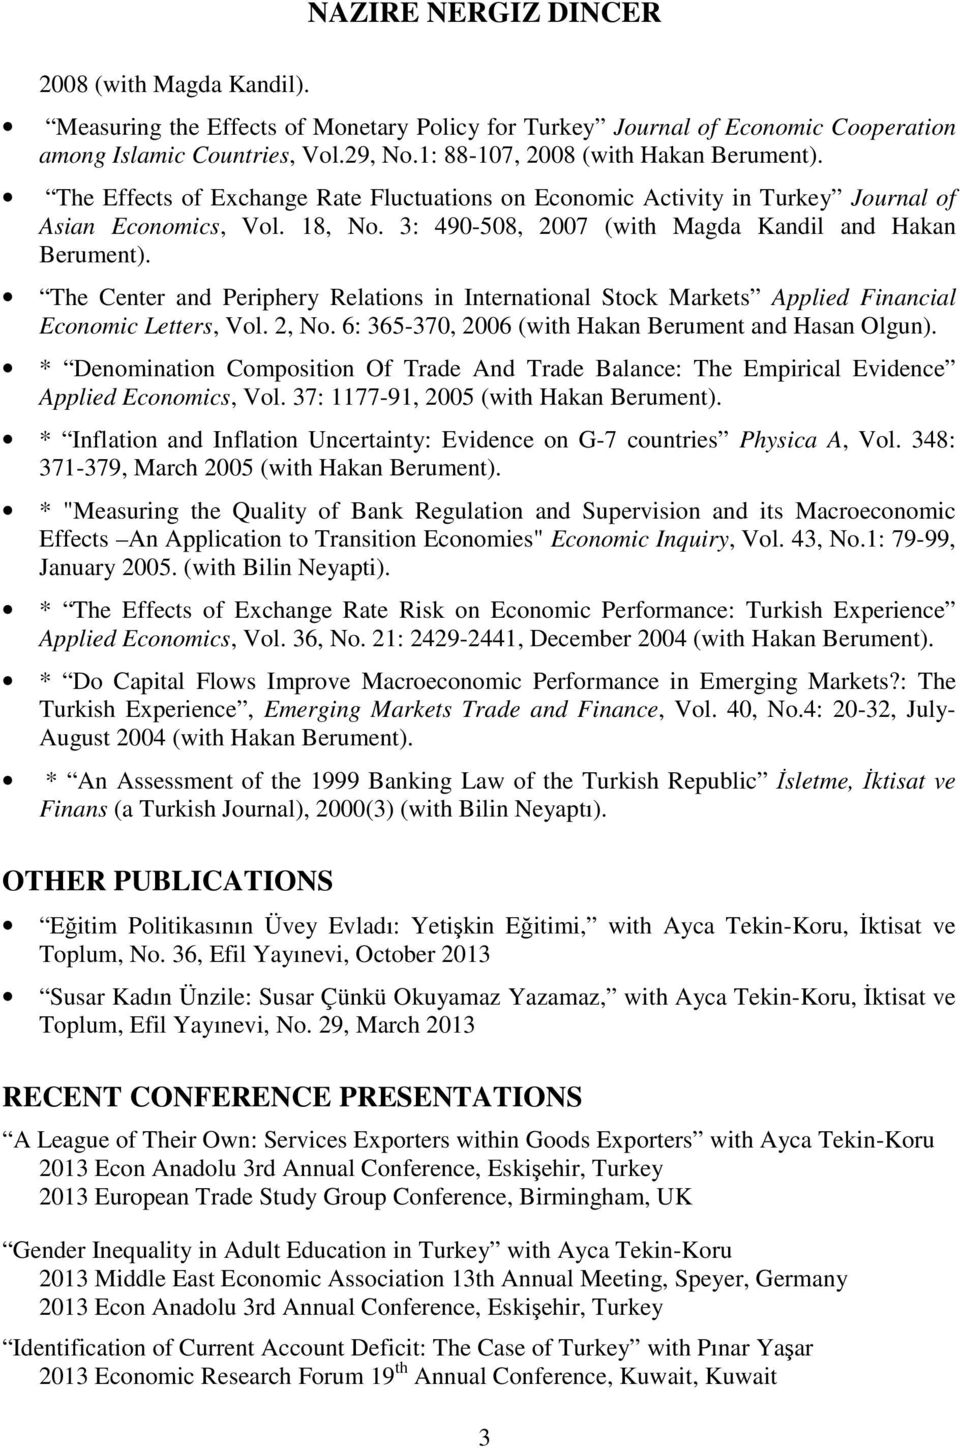 The Center and Periphery Relations in International Stock Markets Applied Financial Economic Letters, Vol. 2, No. 6: 365-370, 2006 (with Hakan Berument and Hasan Olgun).